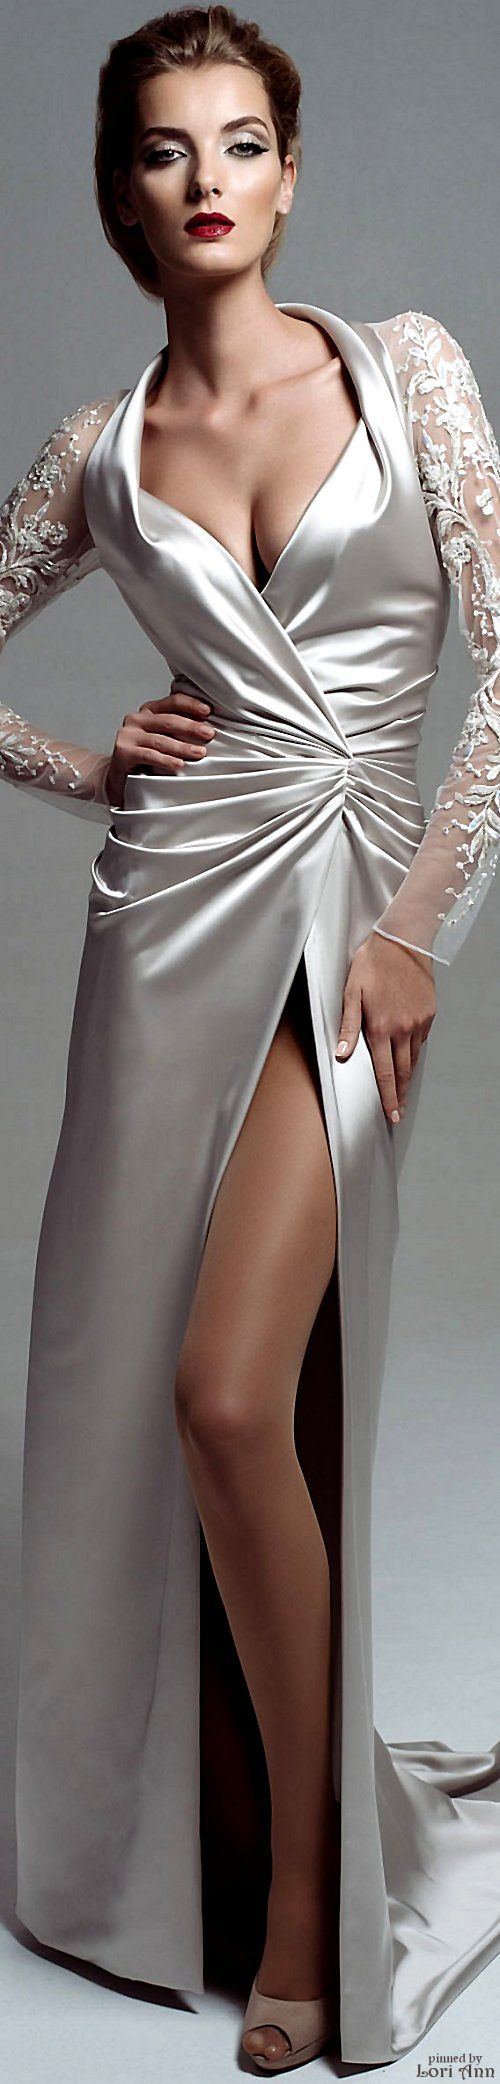 Blanka Matragi Couture Fall 2015 silver maxi dress women fashion outfit clothing style apparel @roressclothes closet ideas